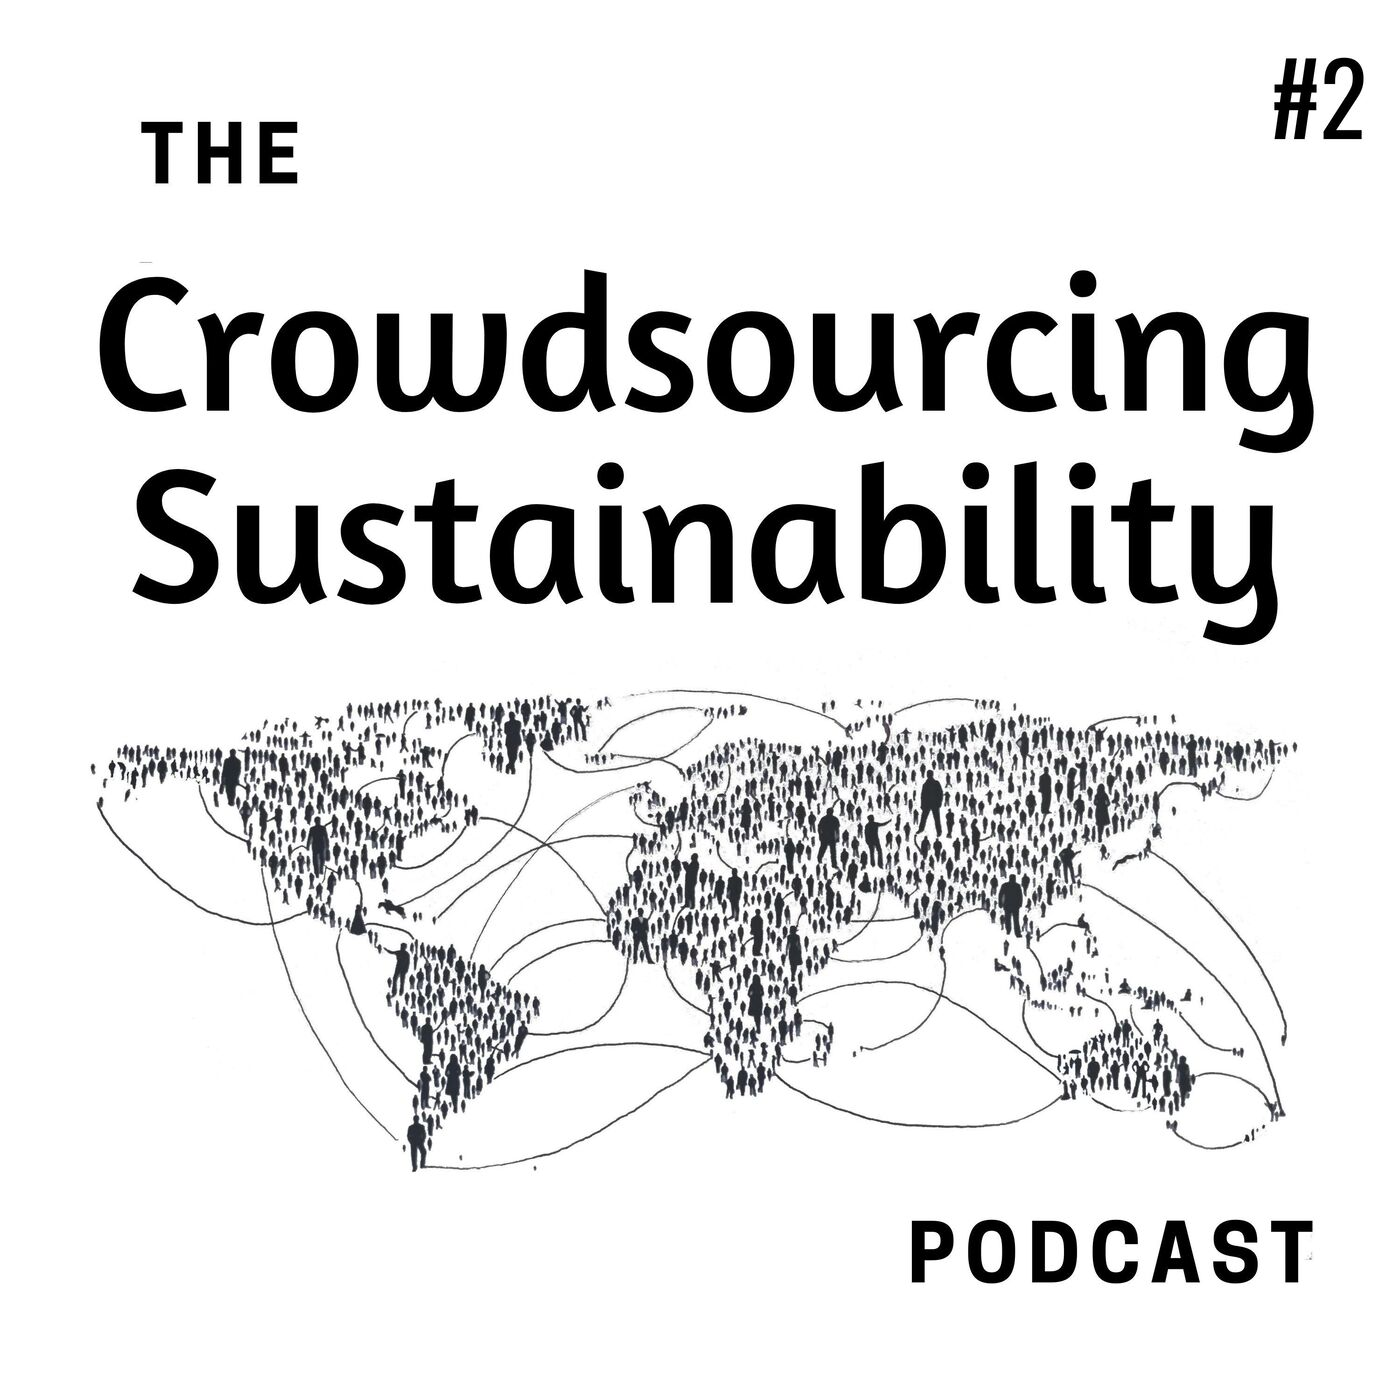 Finding a job in sustainability with Evan Hynes